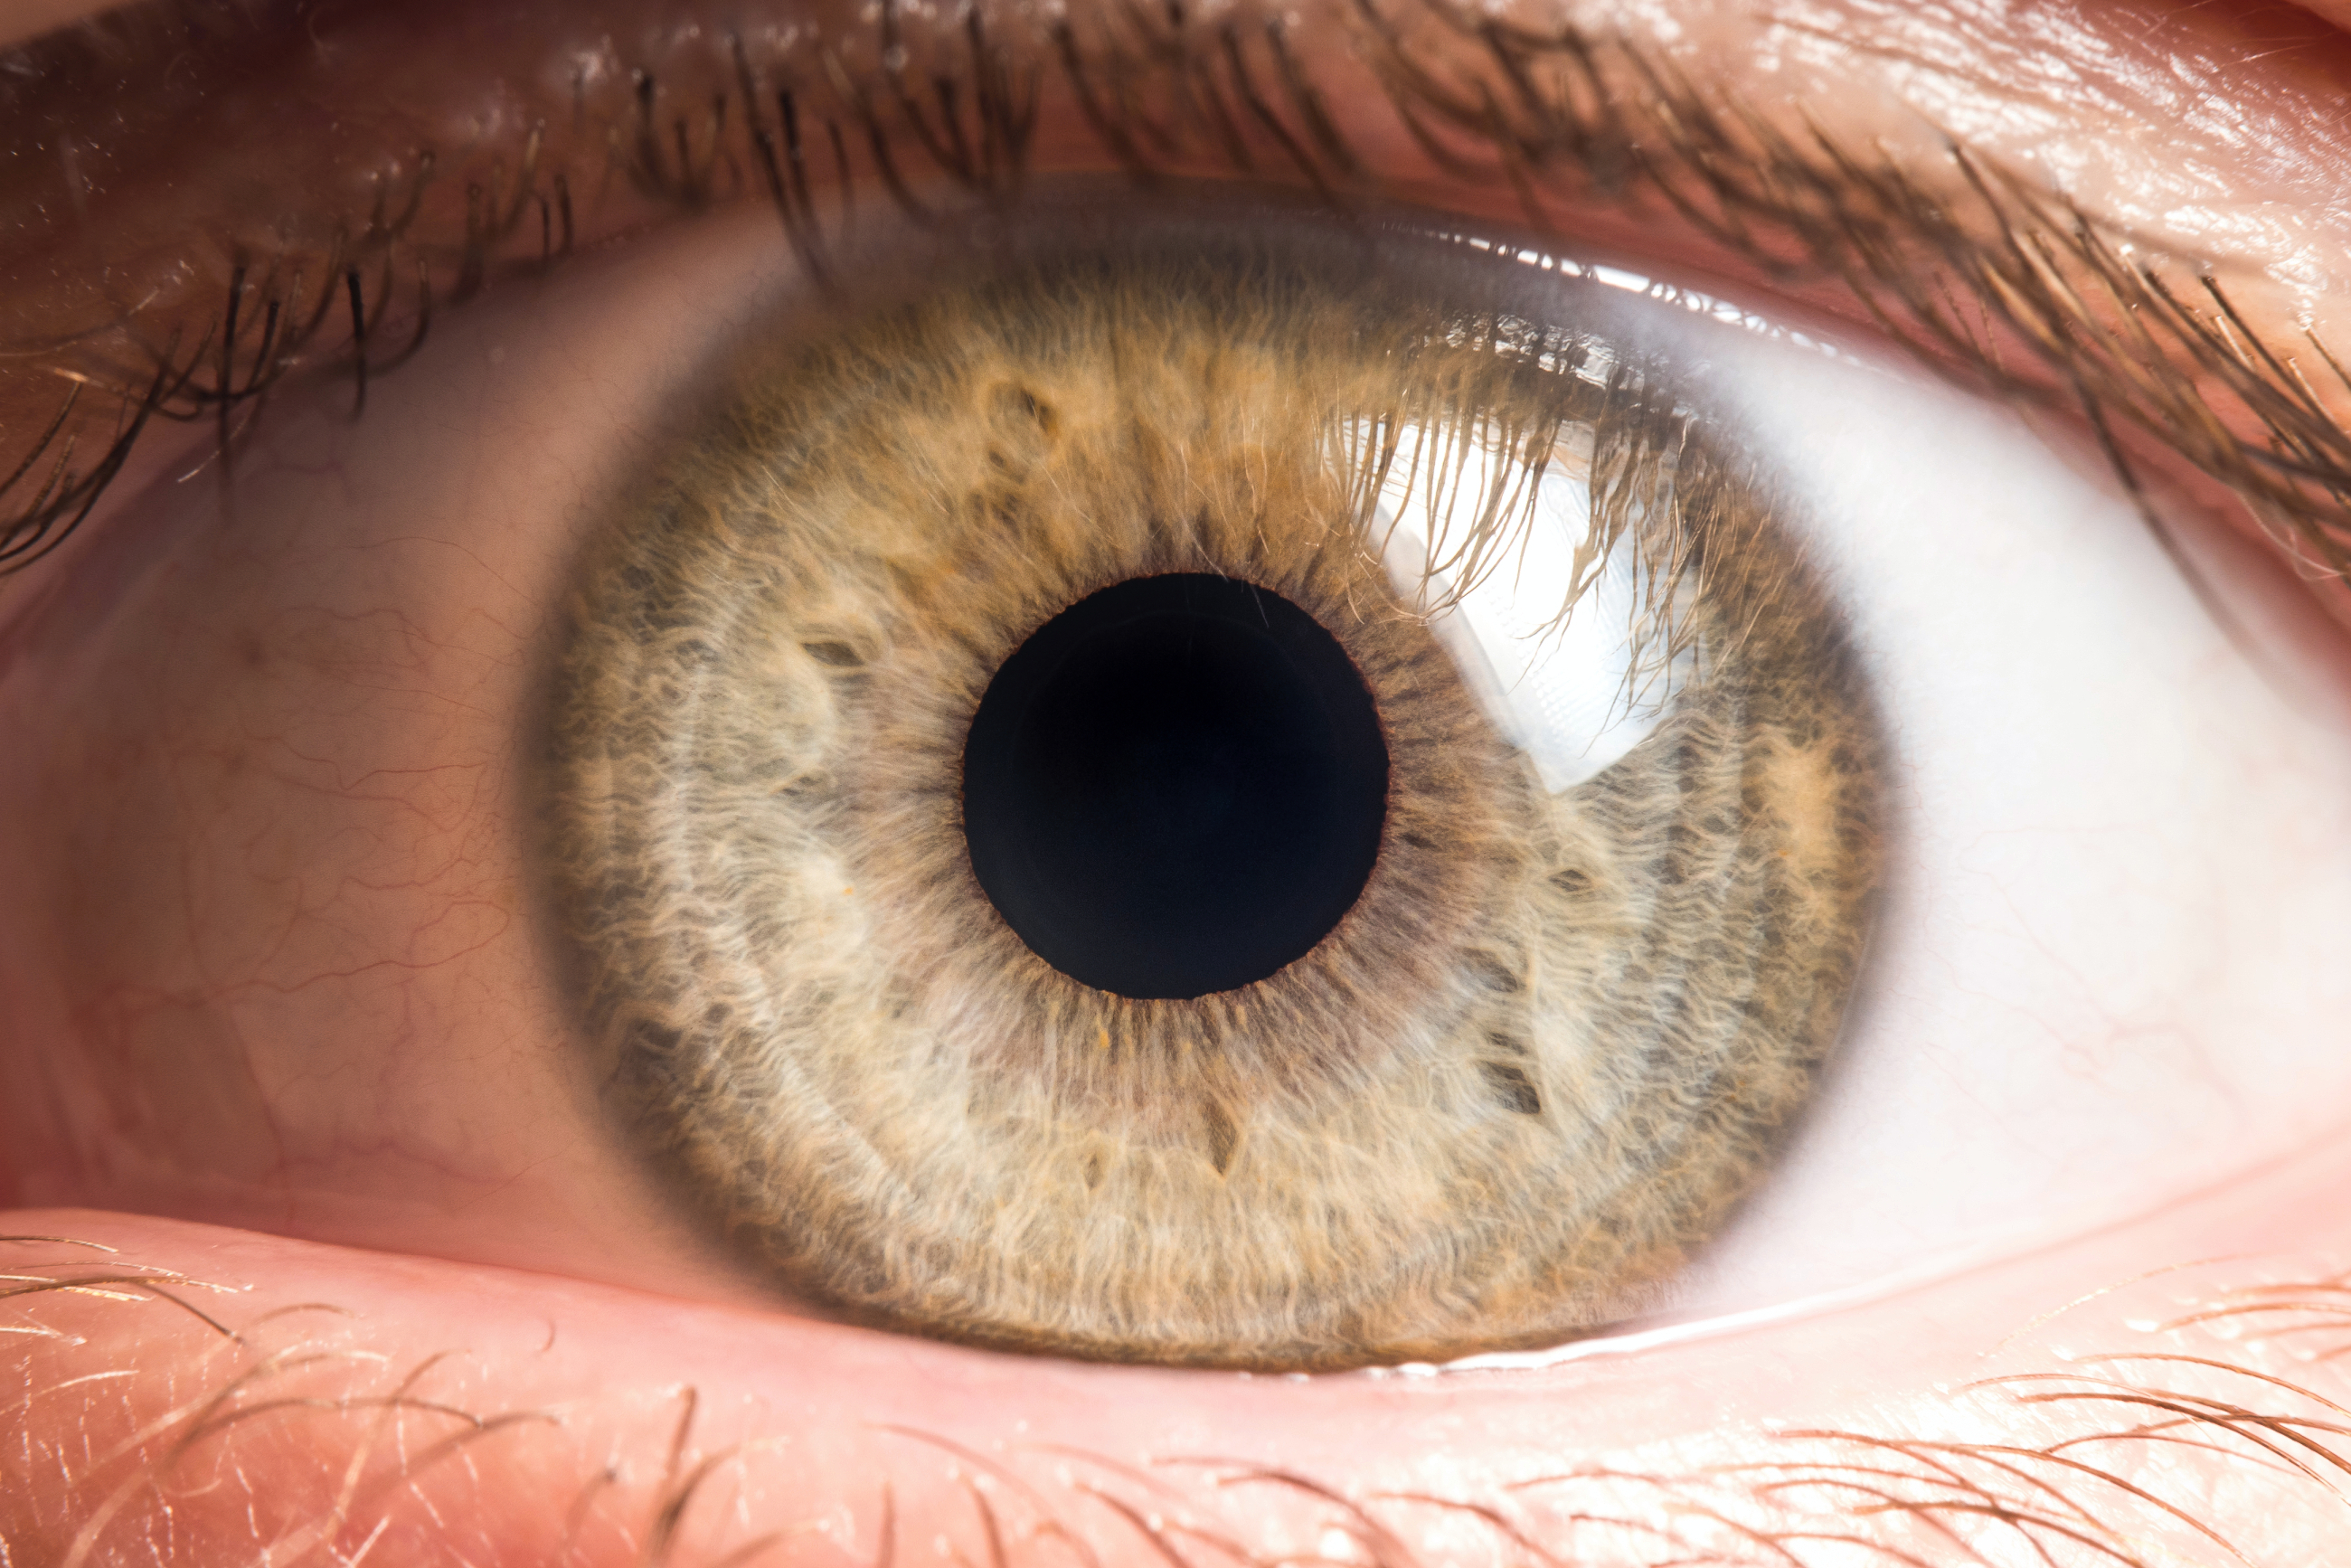 'Prob-eye-otics' could be the future of eye disease treatment